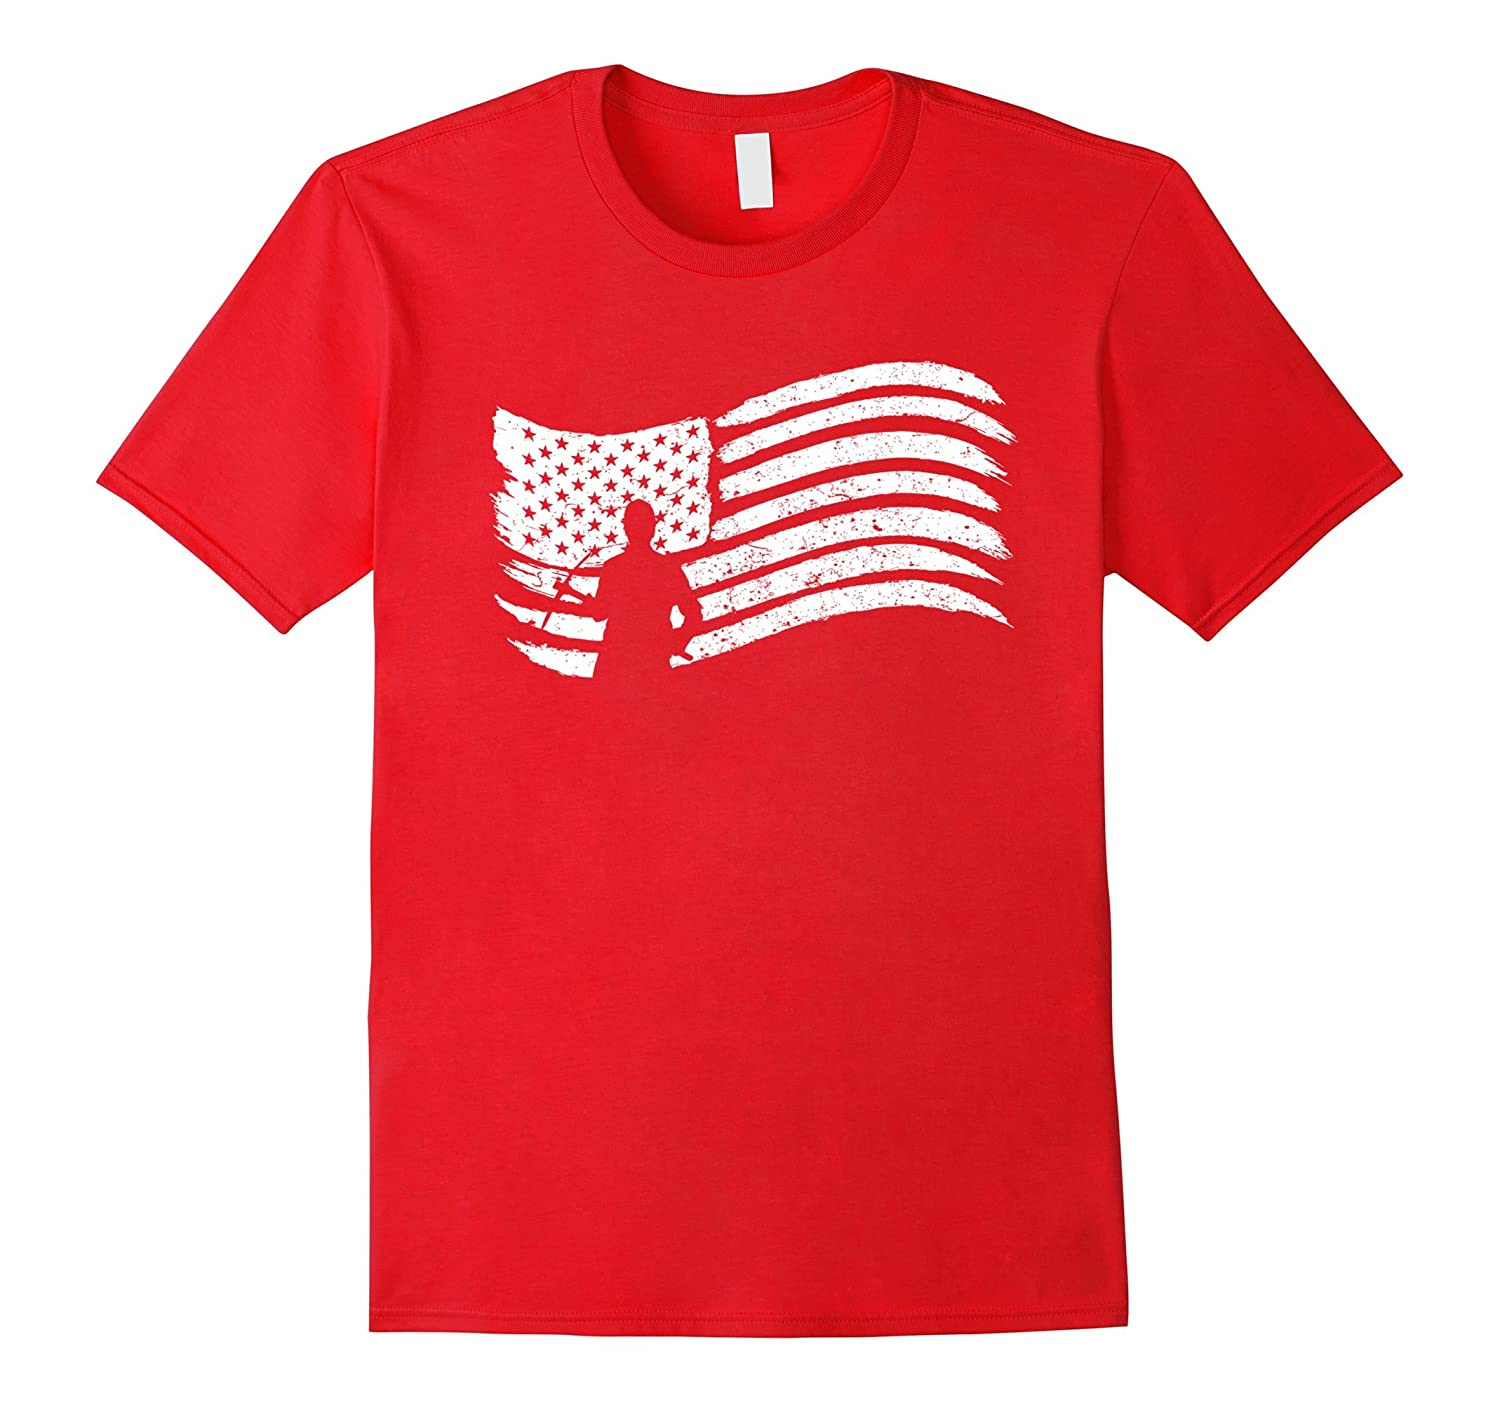 American Flag T-Shirt With Construction Worker With Pick-TJ